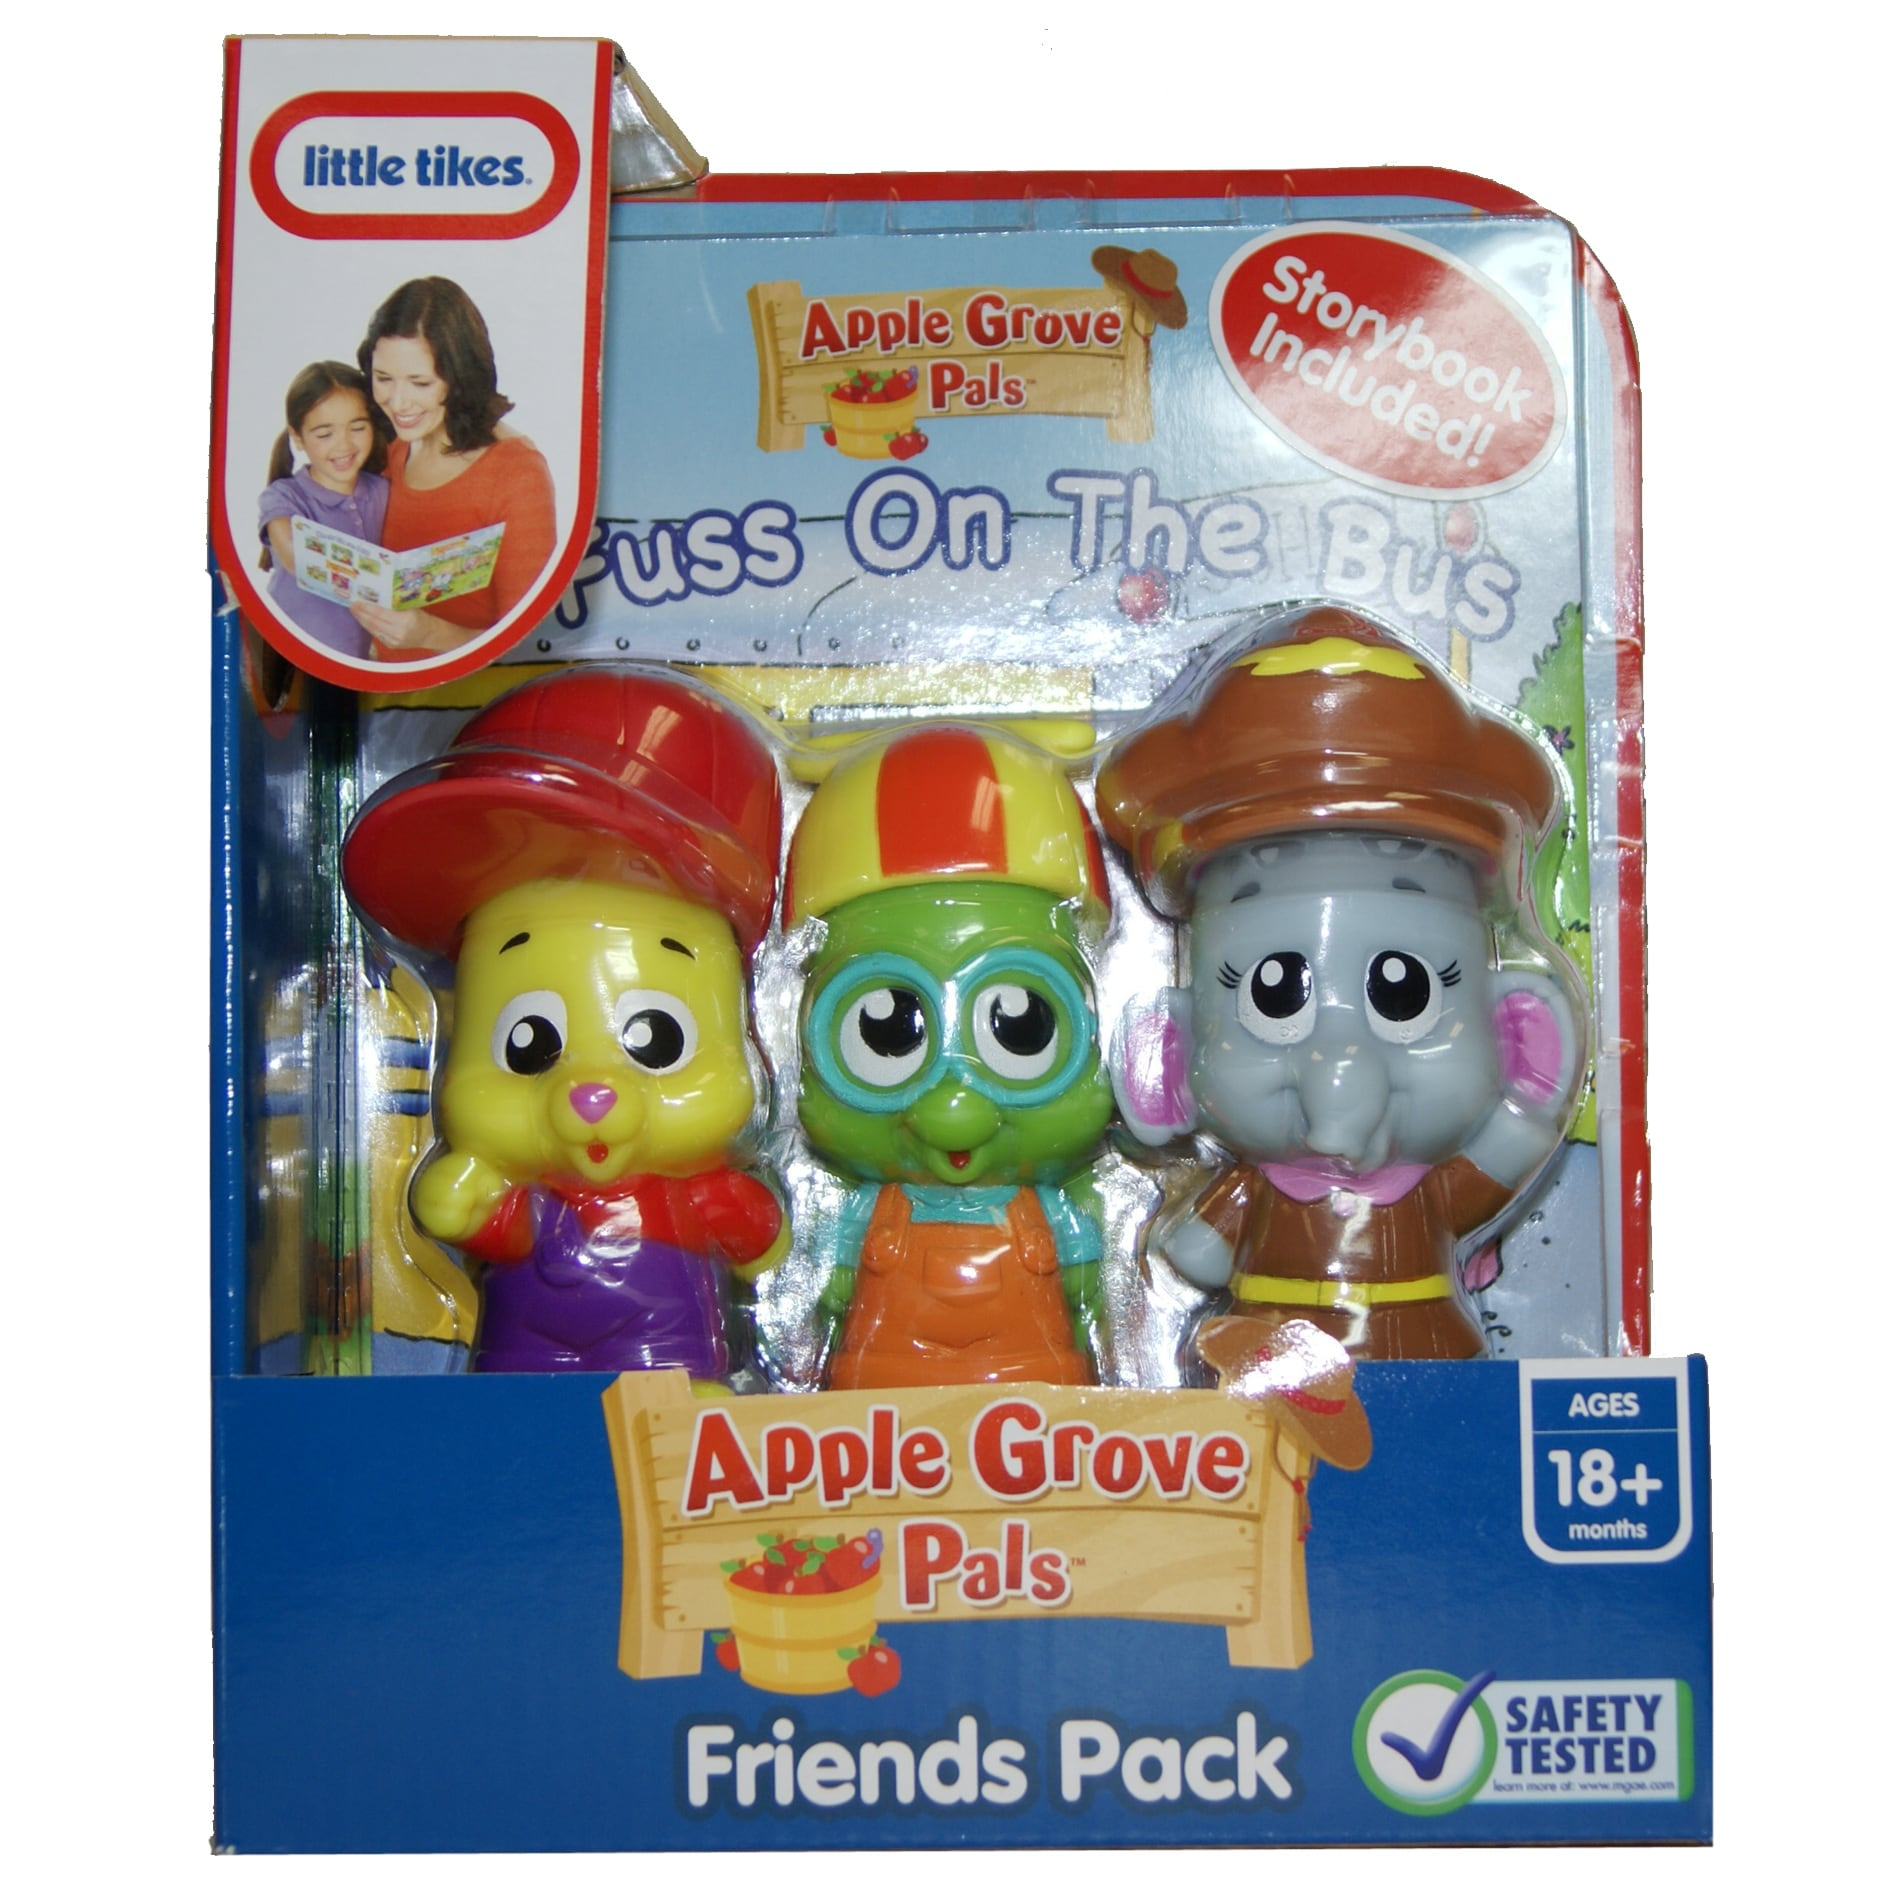 Little Tikes Apple Grove 'A Fuss On The Bus' Play Set